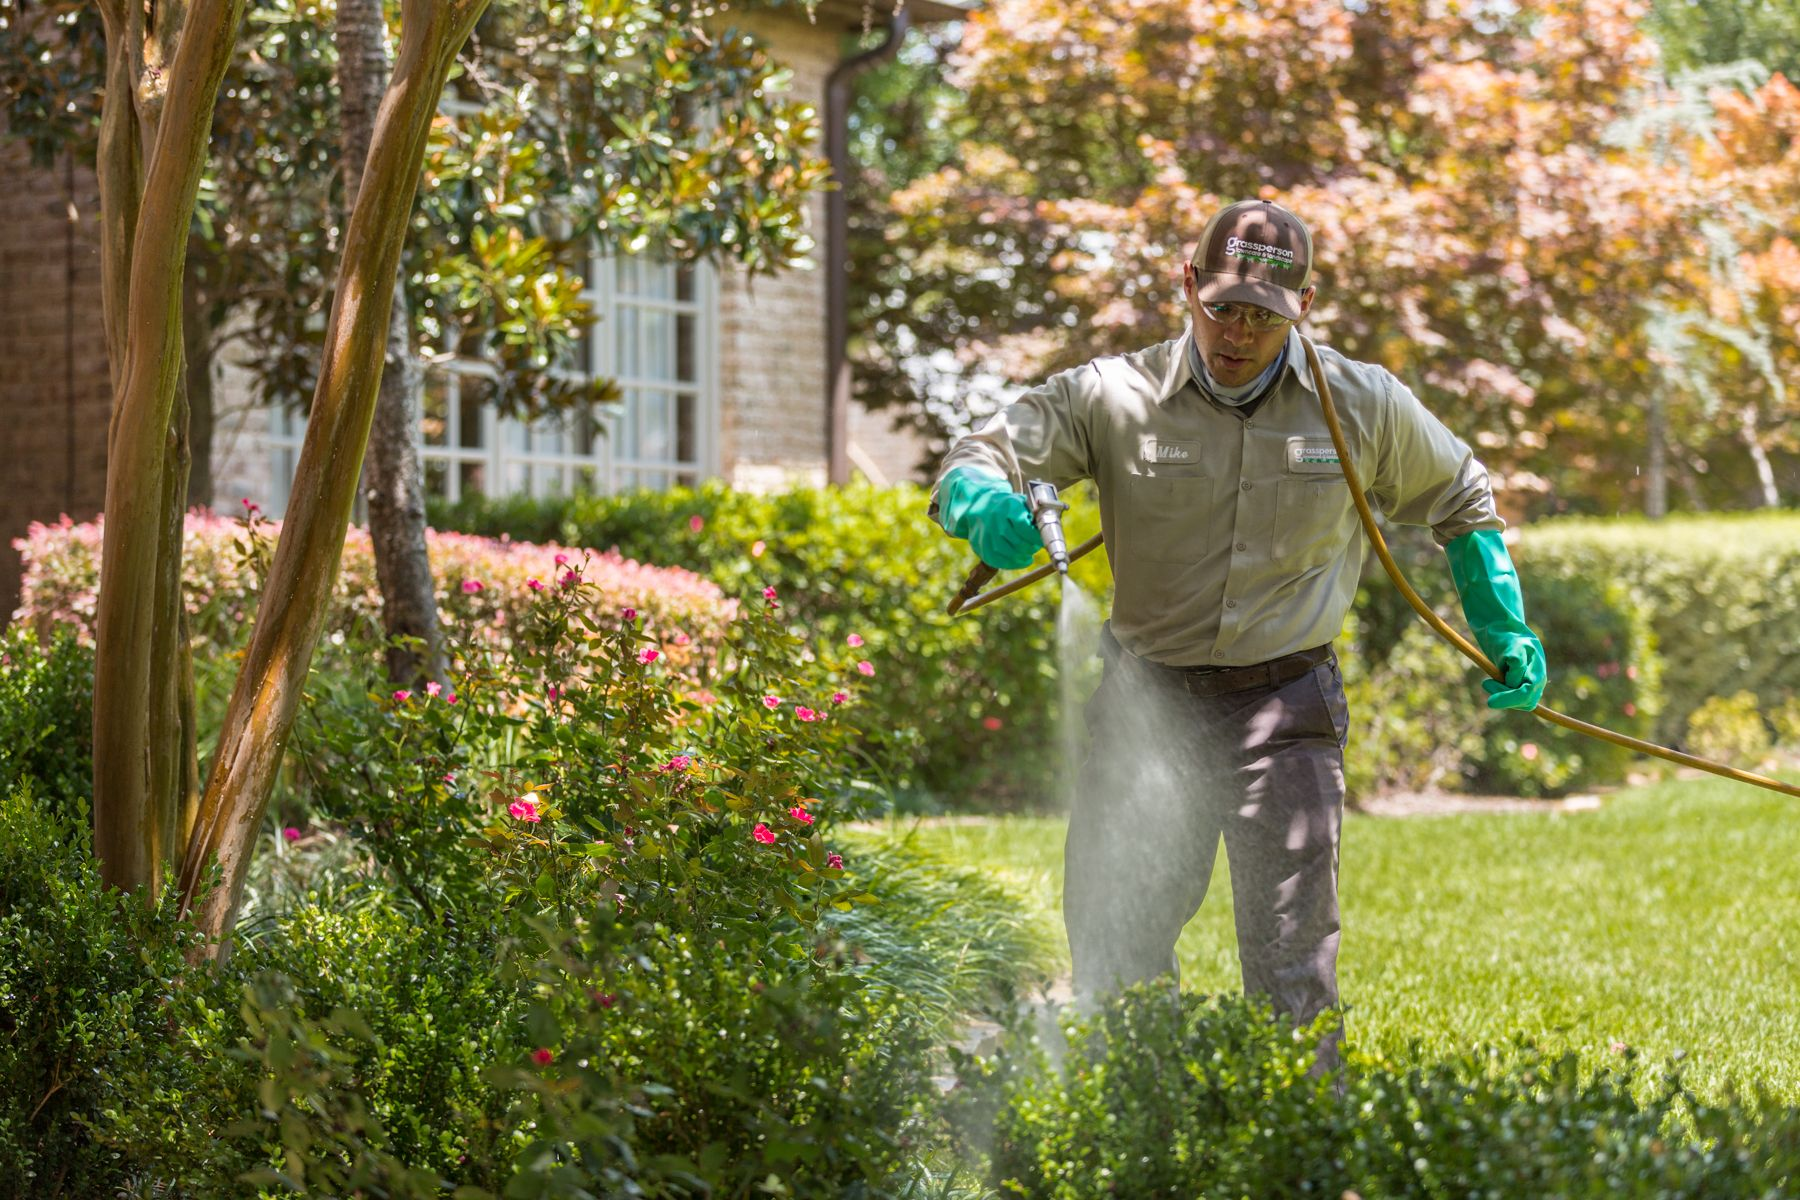 Tidy Landscaping: Your Month-By-Month Calendar for Flower Mound, Highland Village, or West Plano, TX